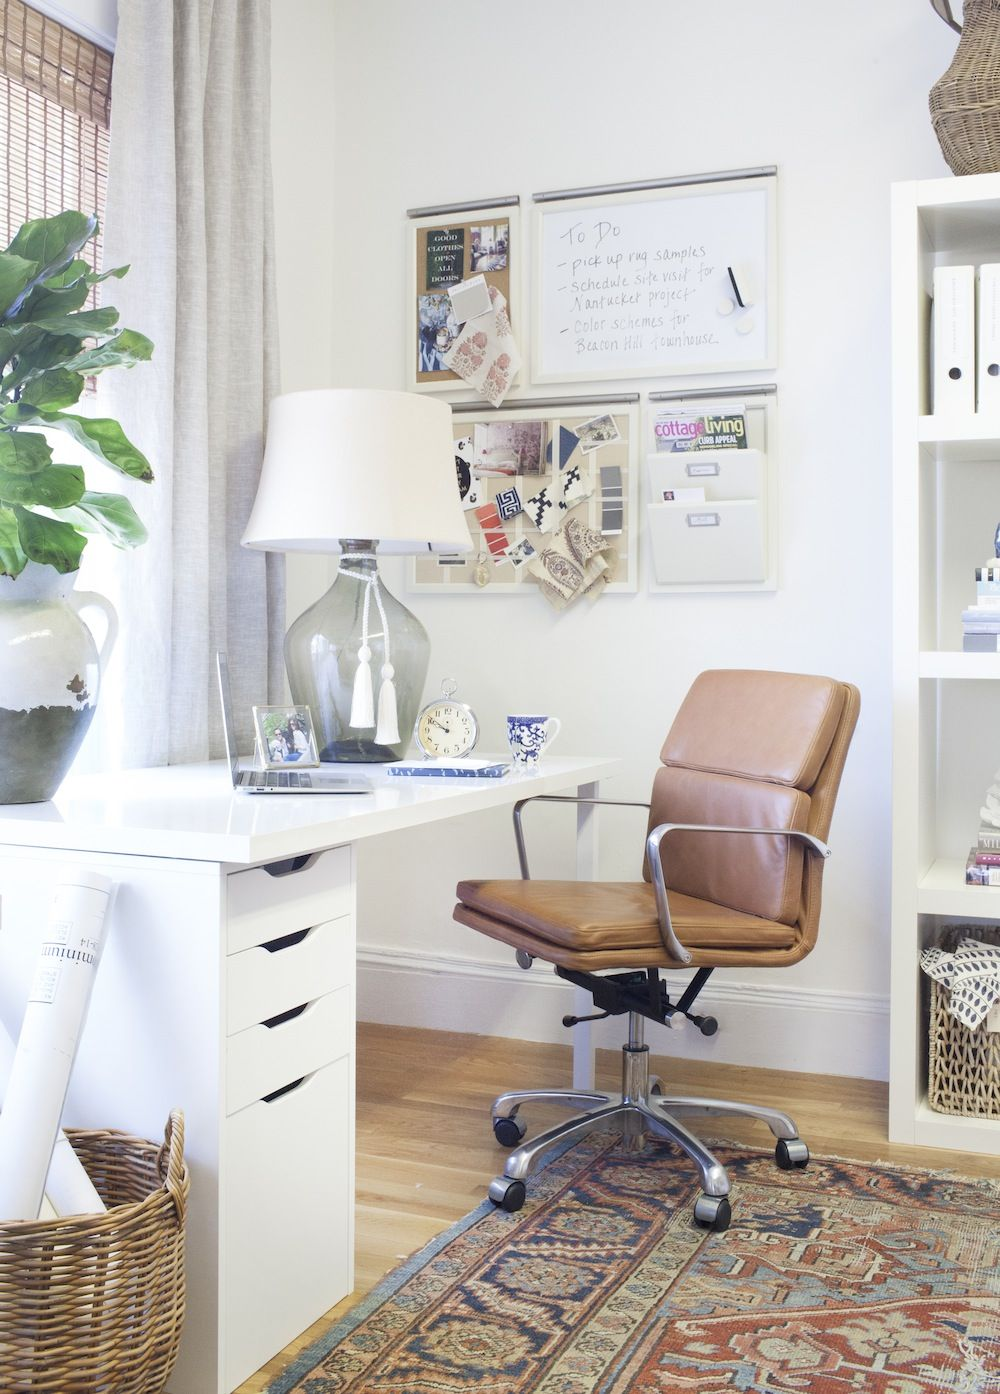 Live your life beautifully workspace pinterest ceilings kiss